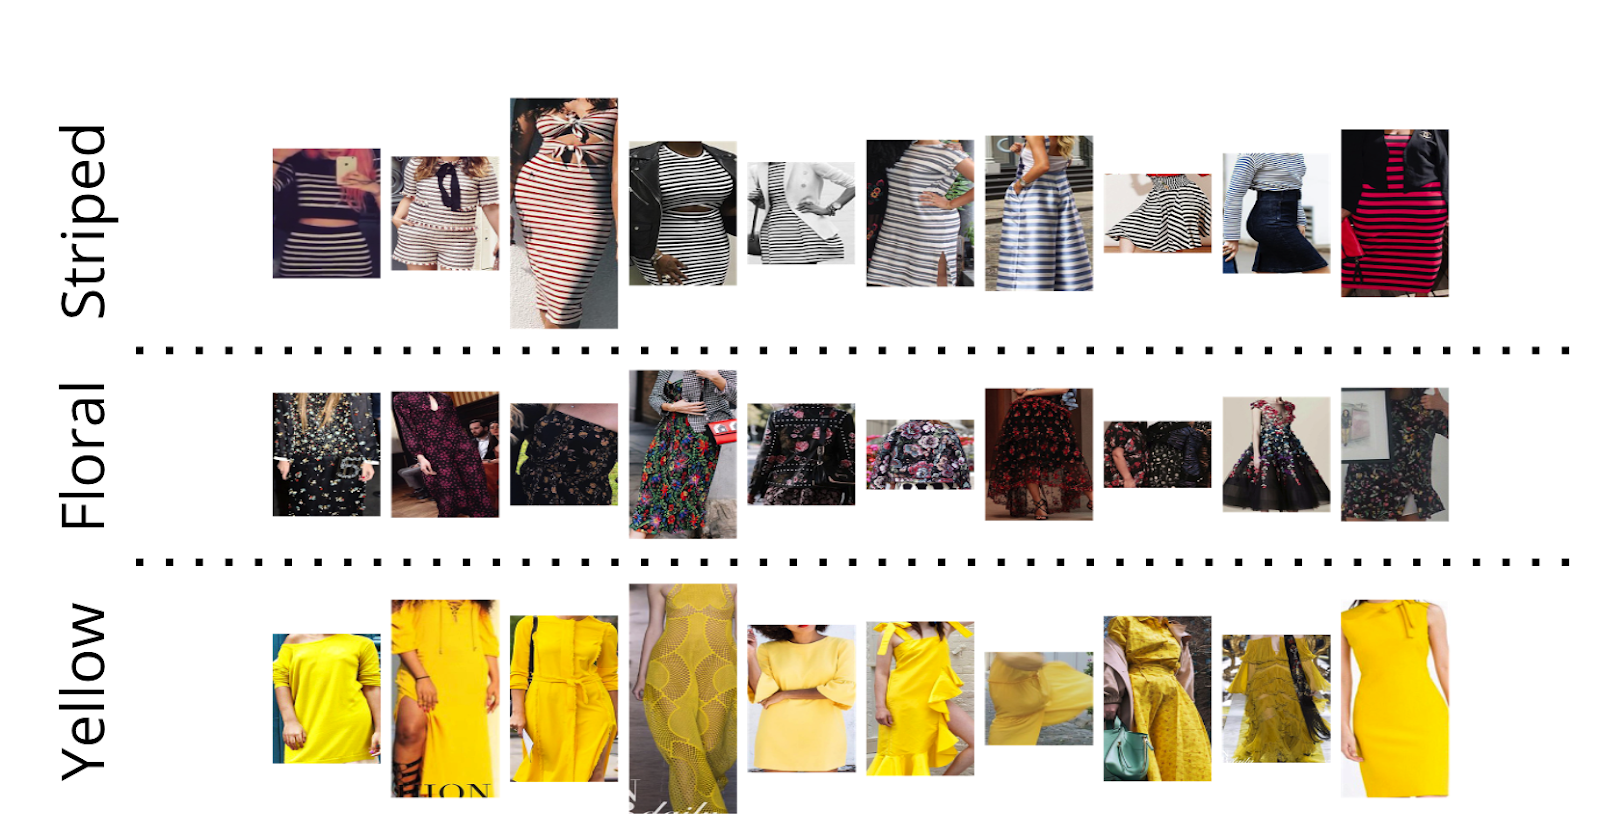 Graphic of different patterns of fabric organized in stripes, floral, and yellow.